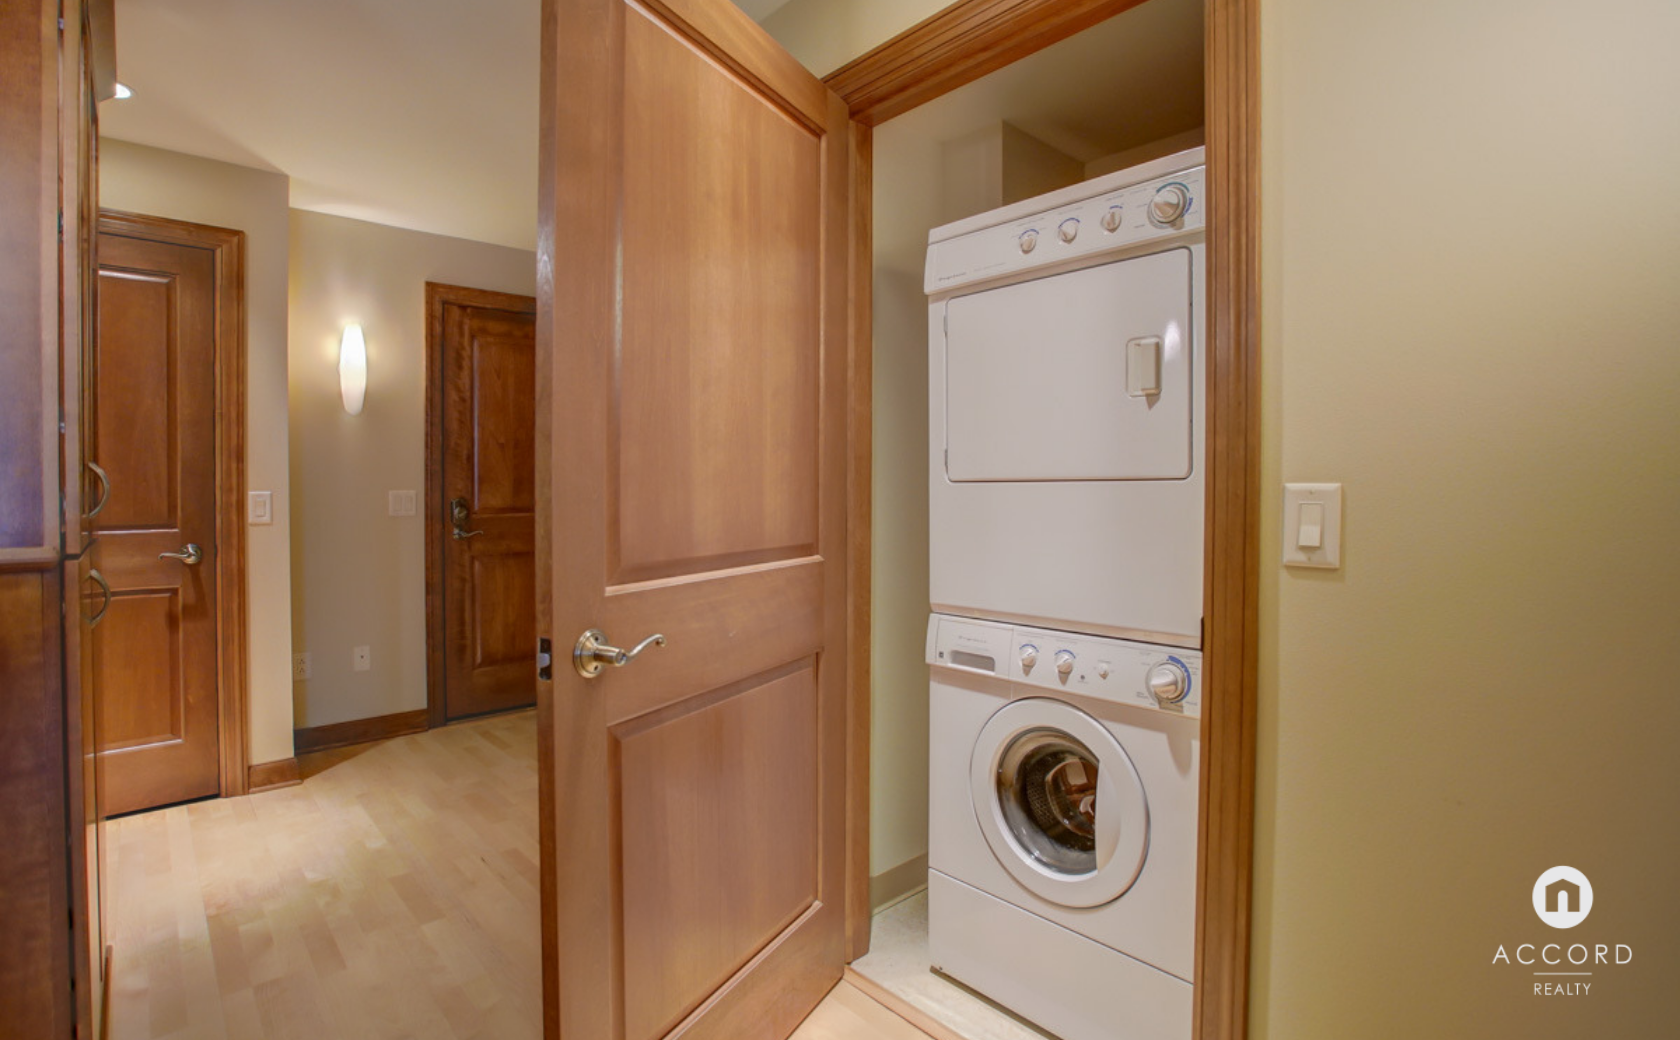 123 W Washington Ave #303 Madison, WI 53703 - Washer Dryer.png